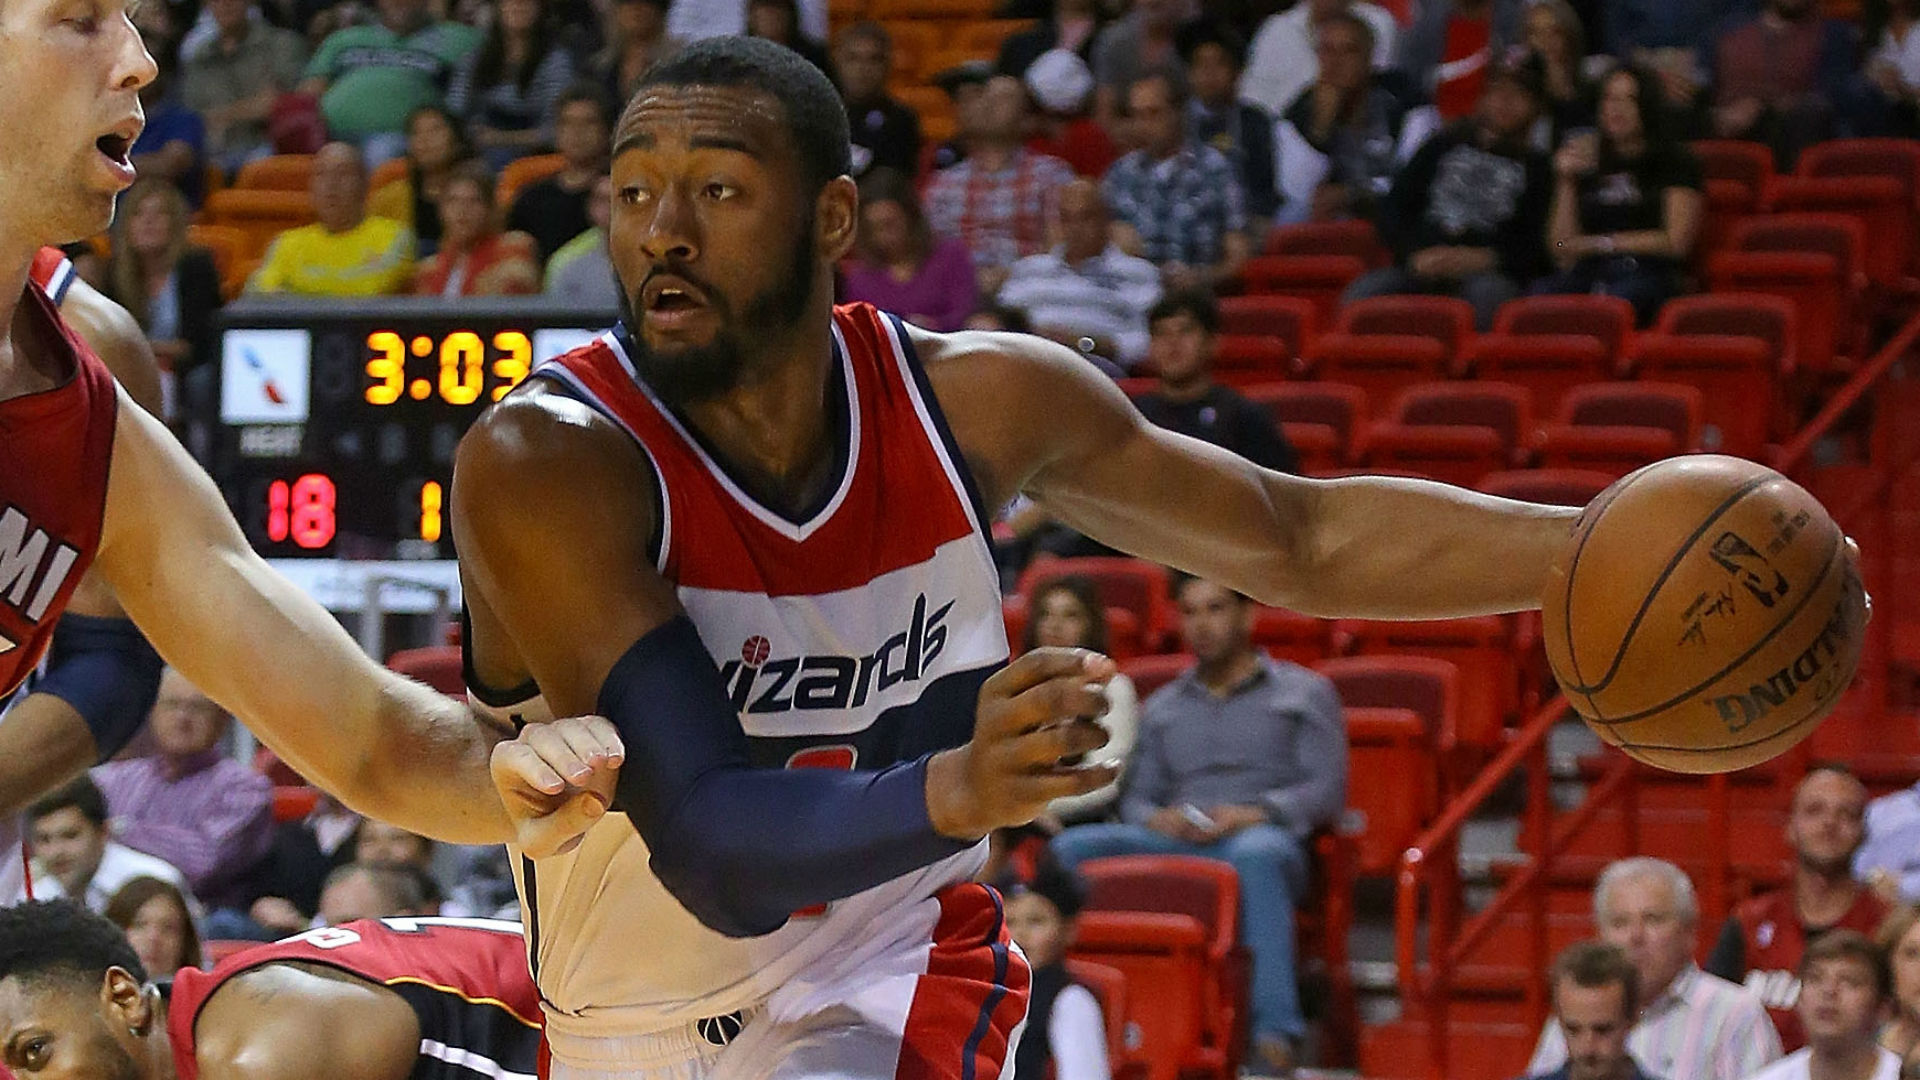 AccuScore's NBA Pick of the Day - 76ers at Wizards